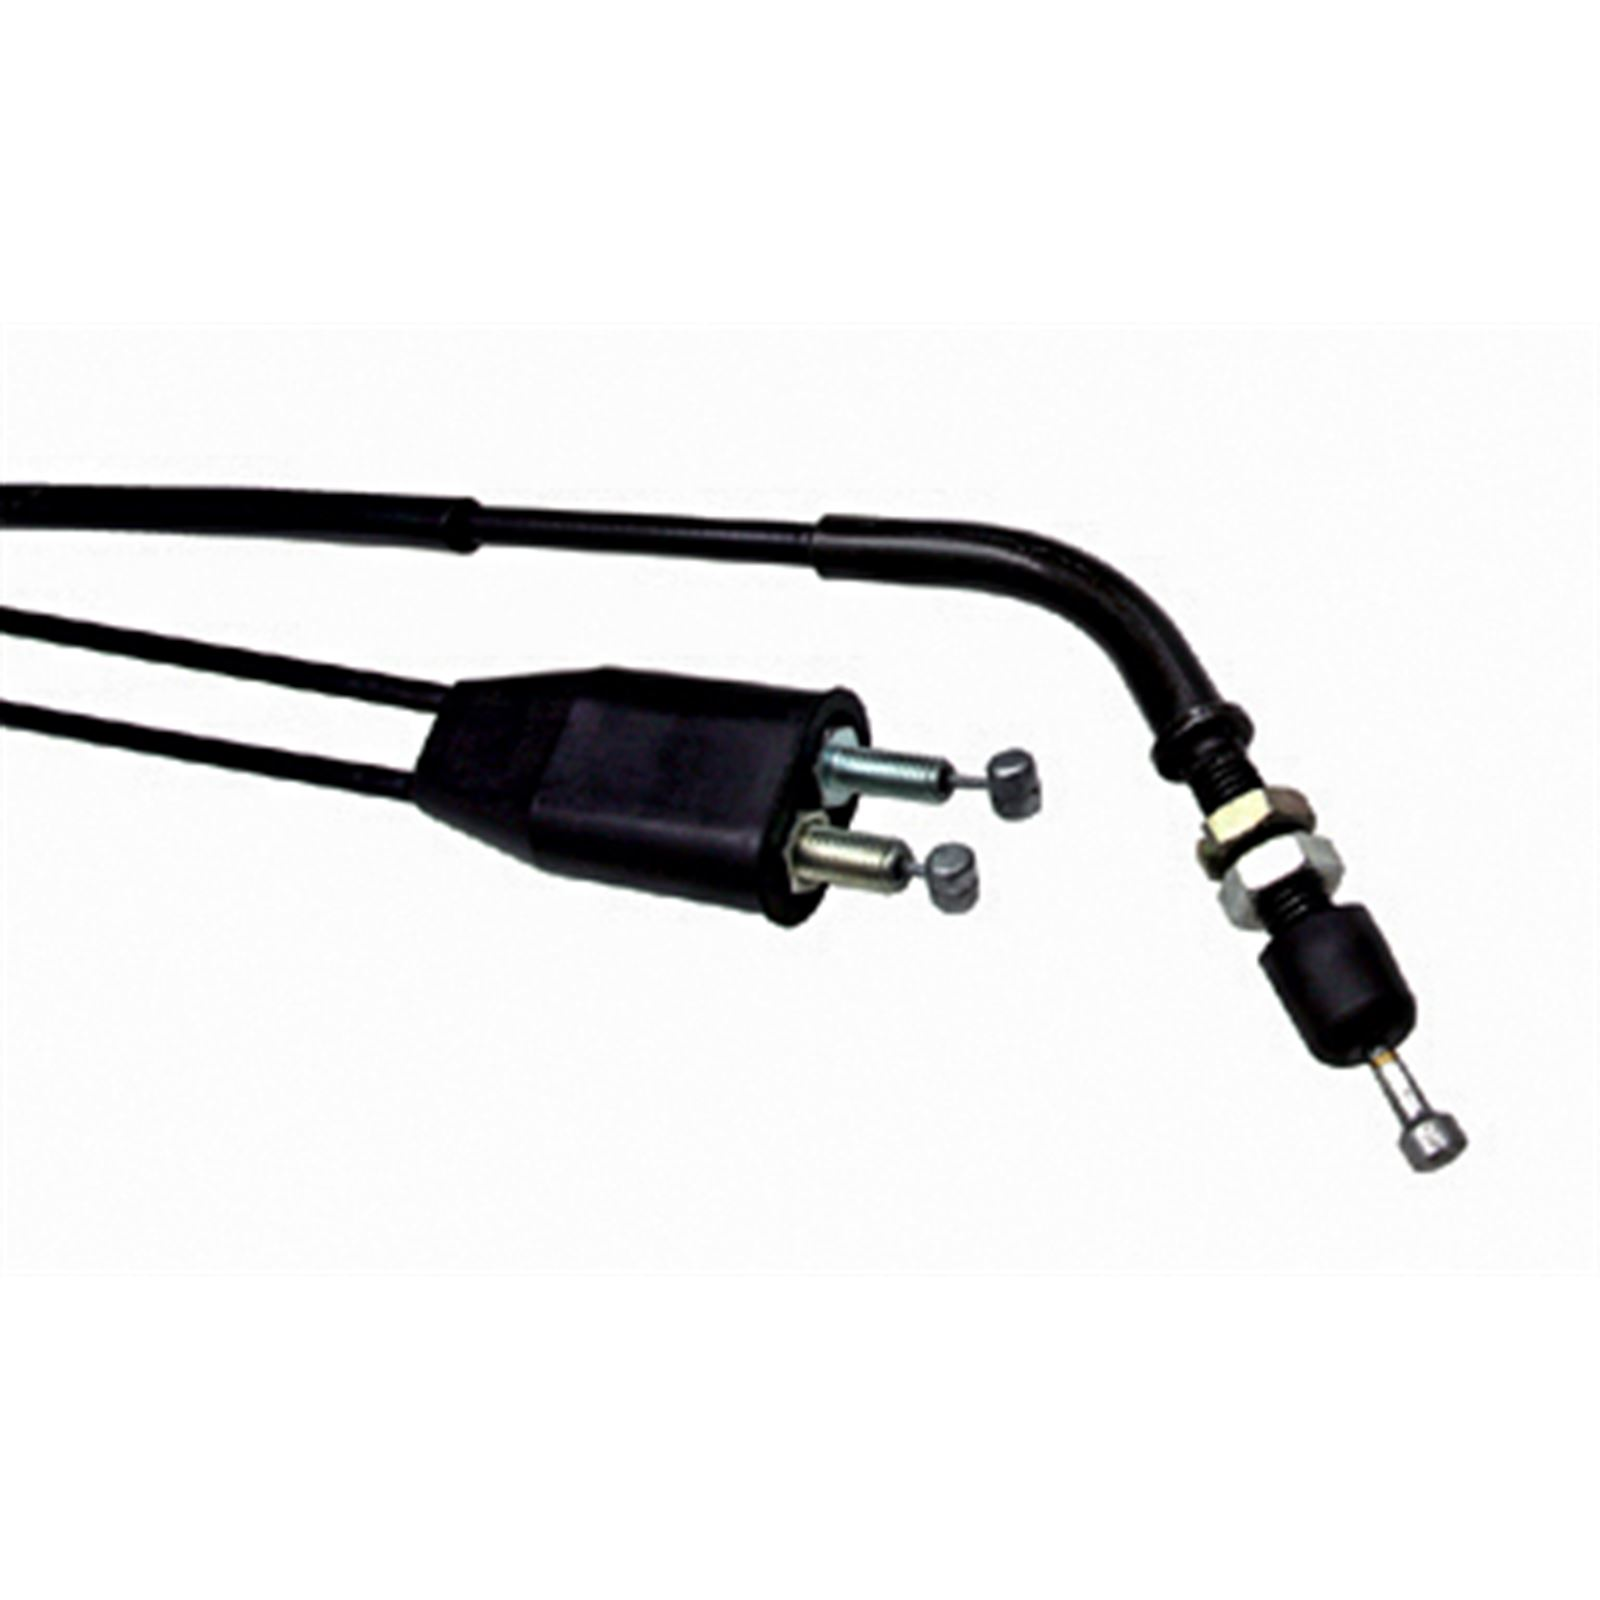 Motion Pro ATV Throttle Cable